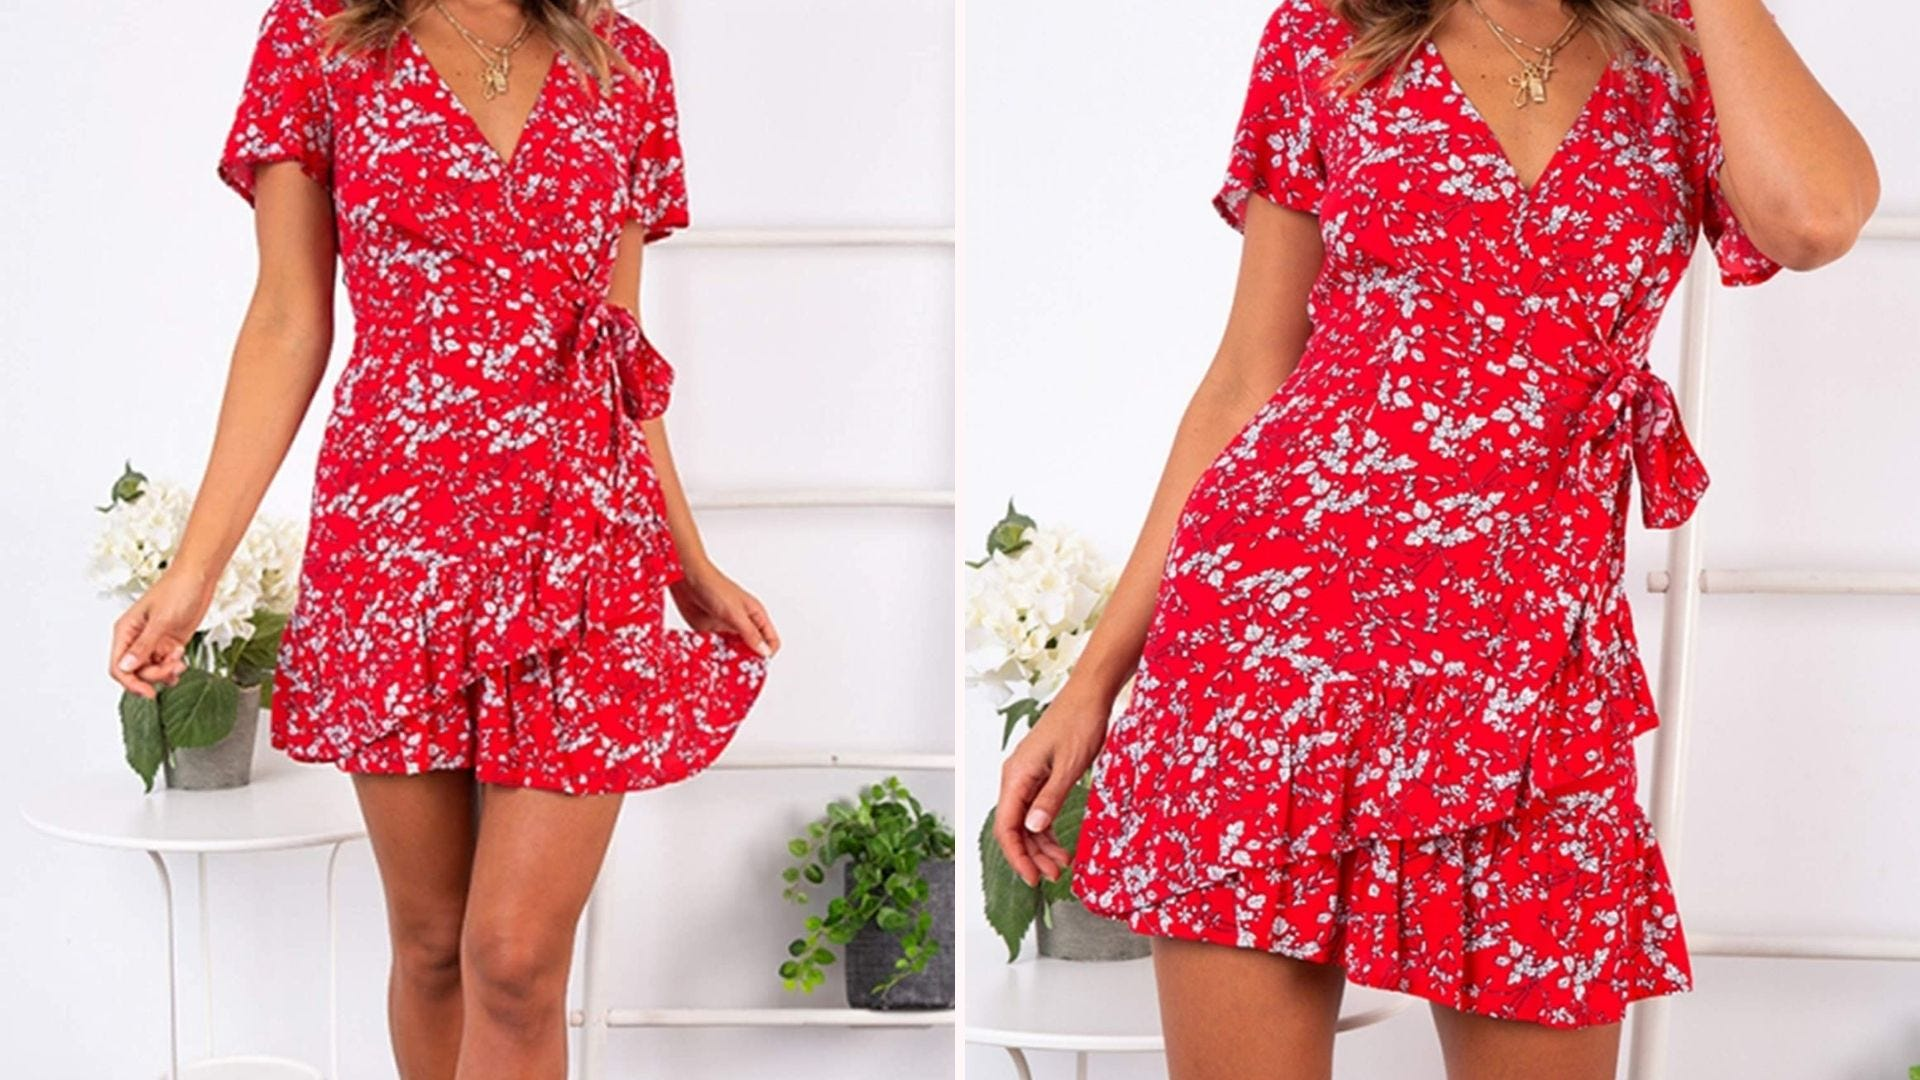 Two pictures of a woman, from the shoulders down, wearing a red floral print dress